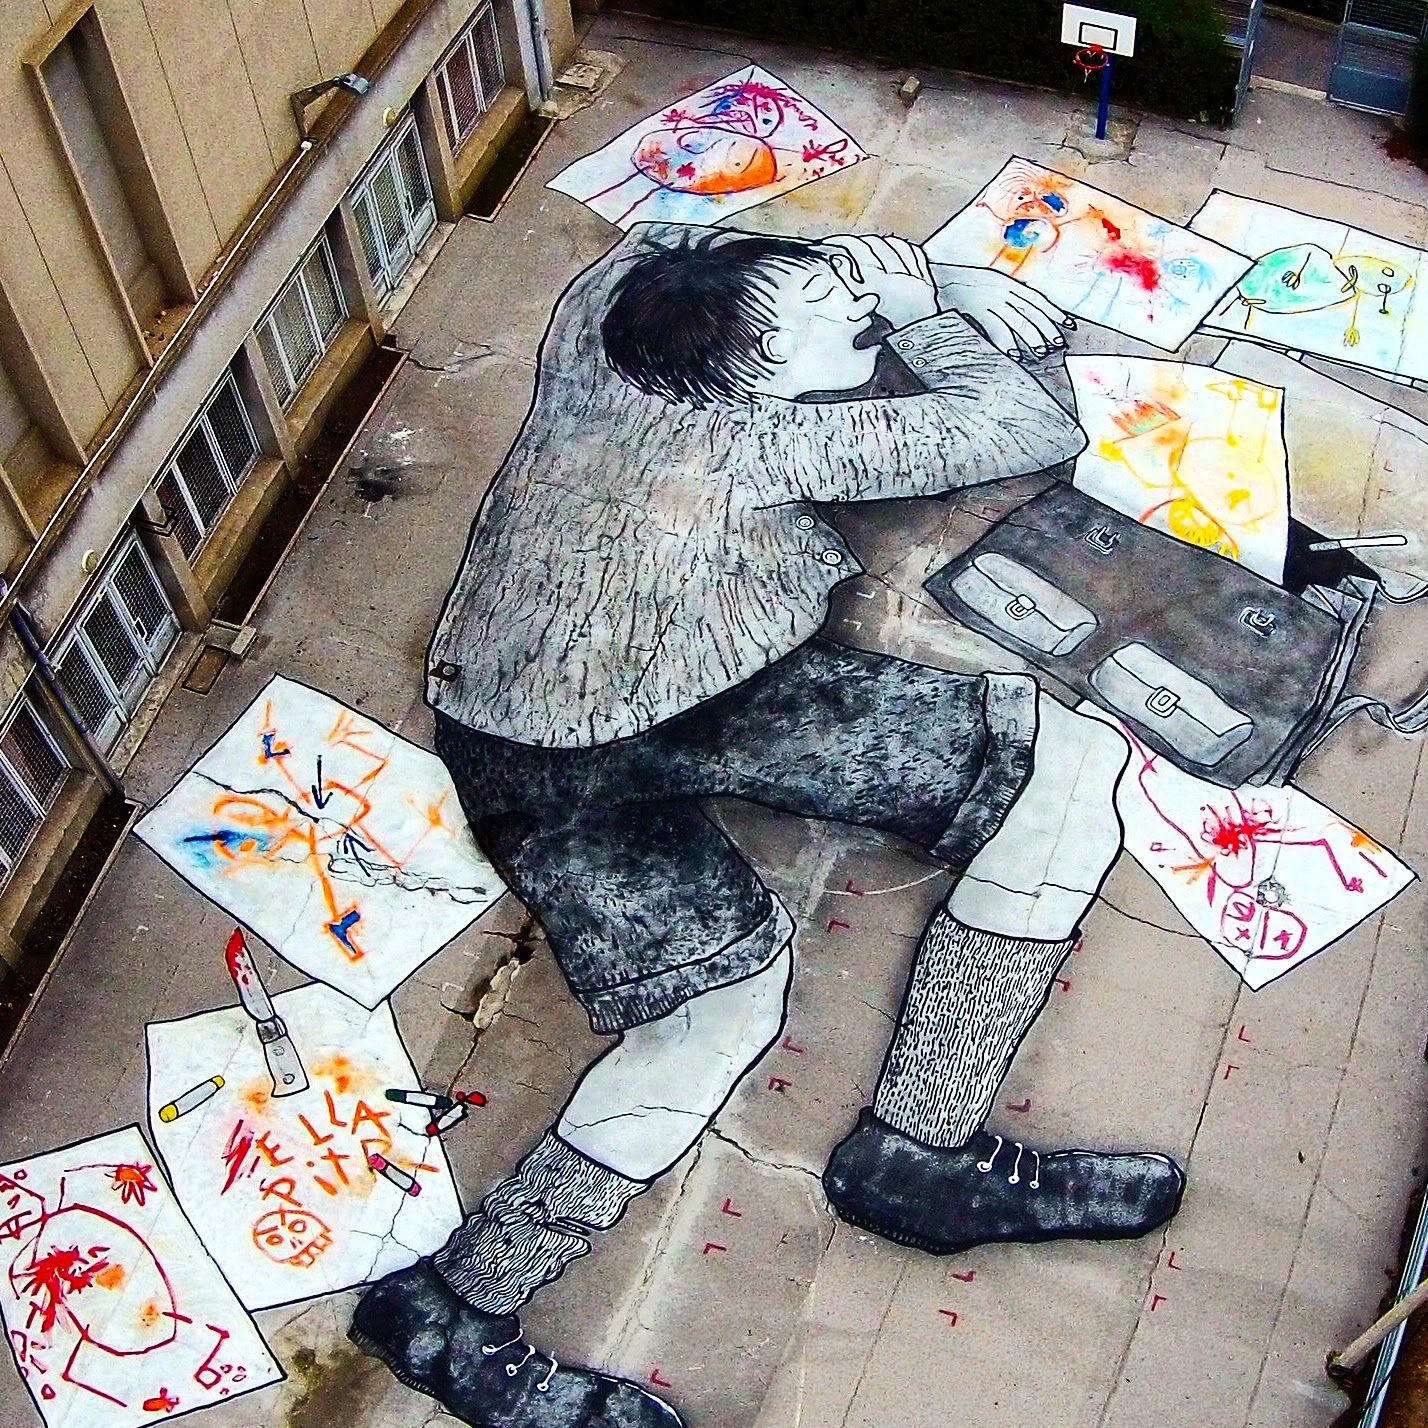 Ella & Pitr are back on the streets of their hometown, Saint Etienne in France where they just finished working on this impressive and amazing artwork. Known for their storybook-like illustrations, the French street art duo painted this enormous piece showing a young kid taking a rest after a series of mischief on paper.